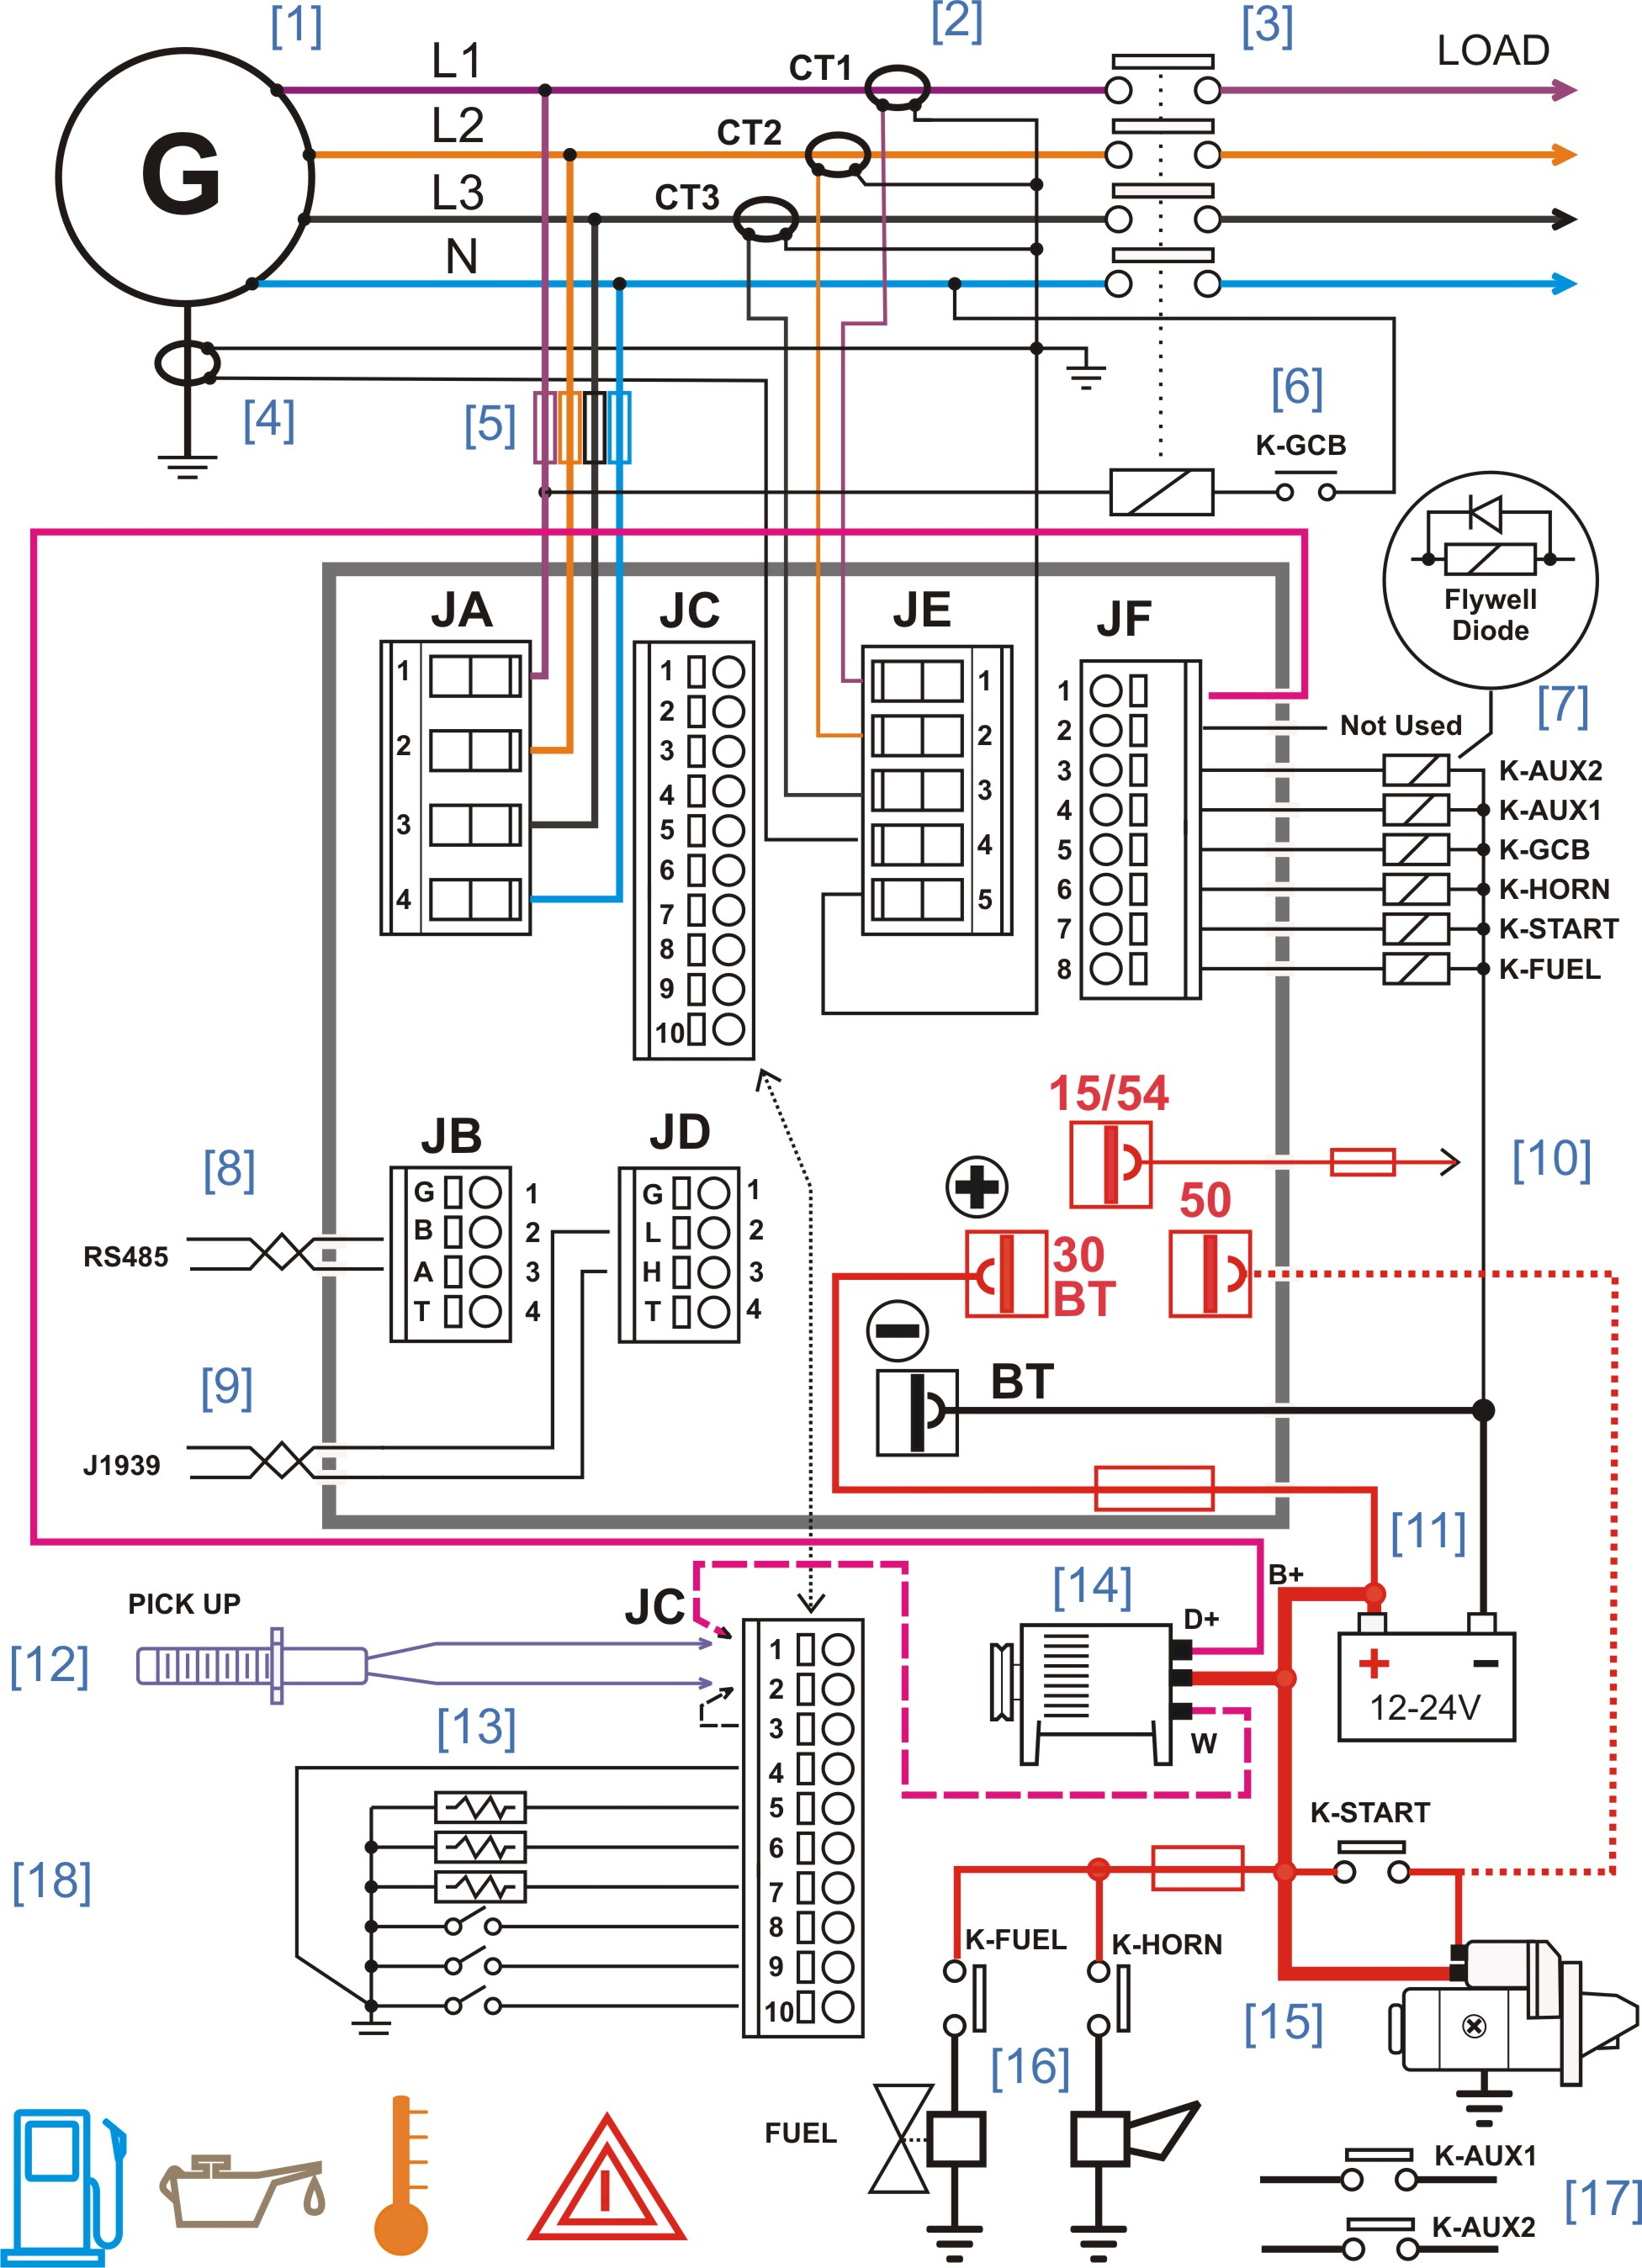 Digital Security Controls Wiring Diagram Ademco Manuals How To And - Neo Trailer Wiring Diagram